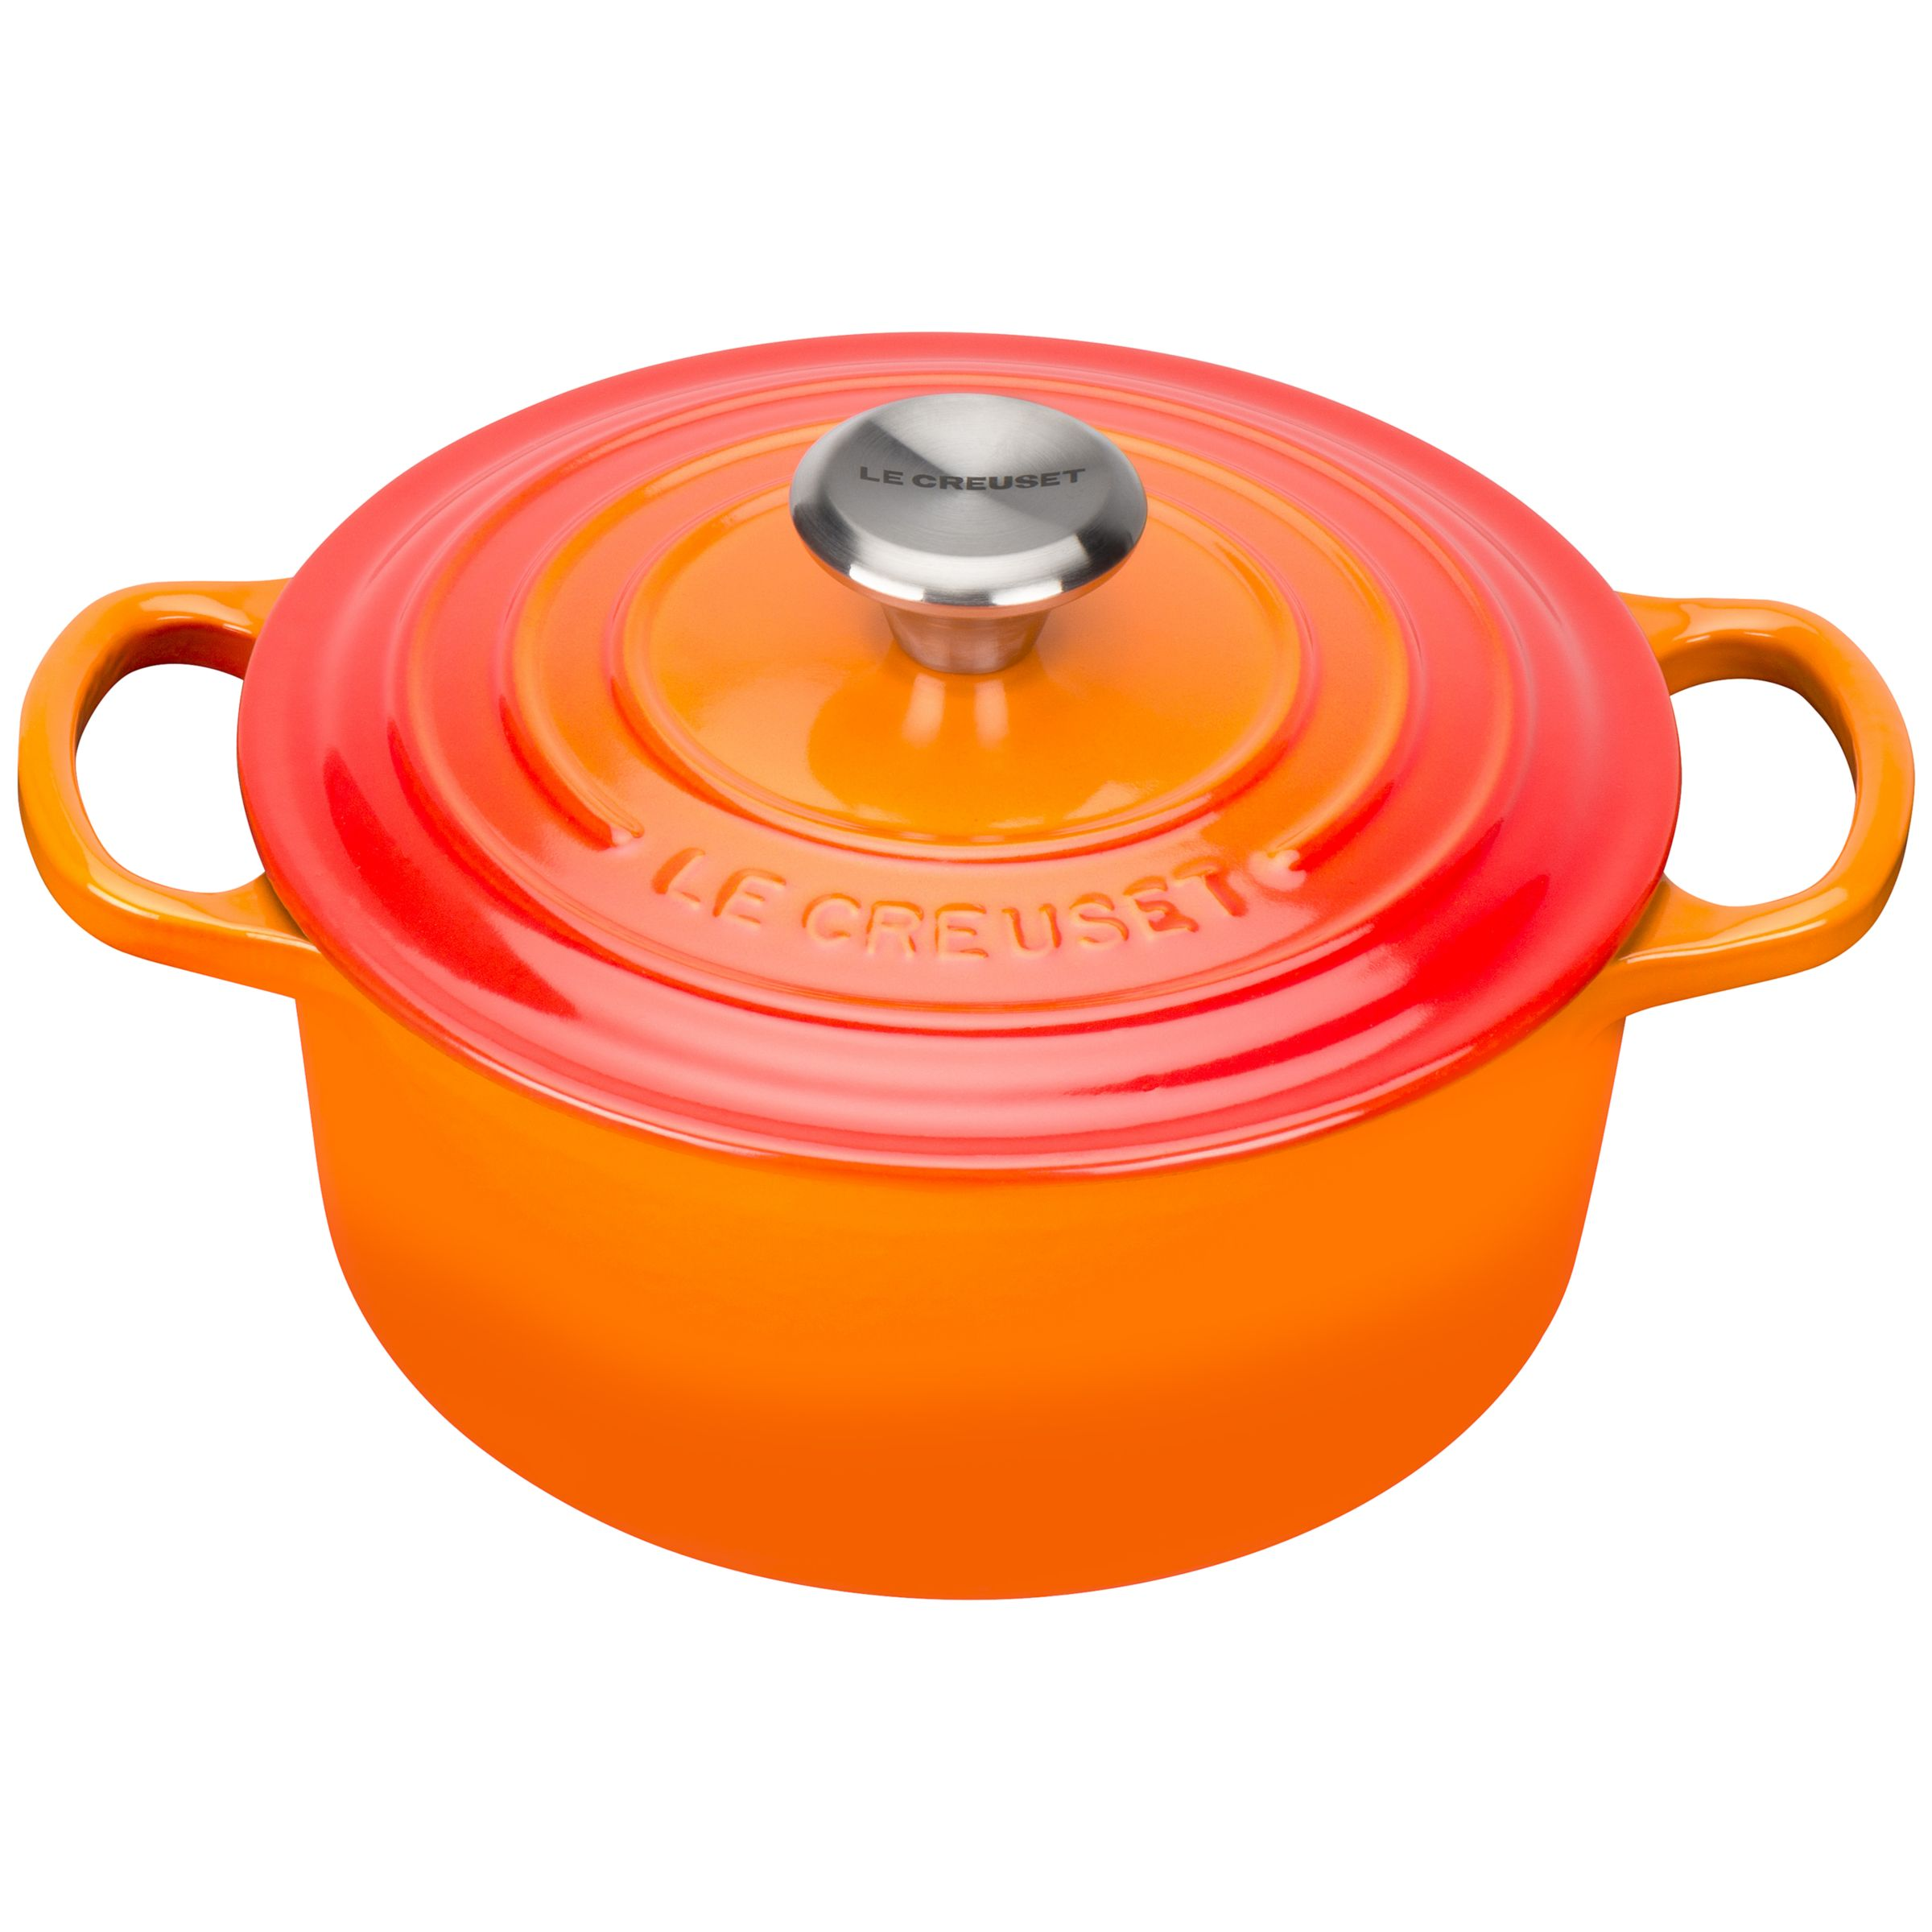 le creuset signature cast iron round casserole octer. Black Bedroom Furniture Sets. Home Design Ideas